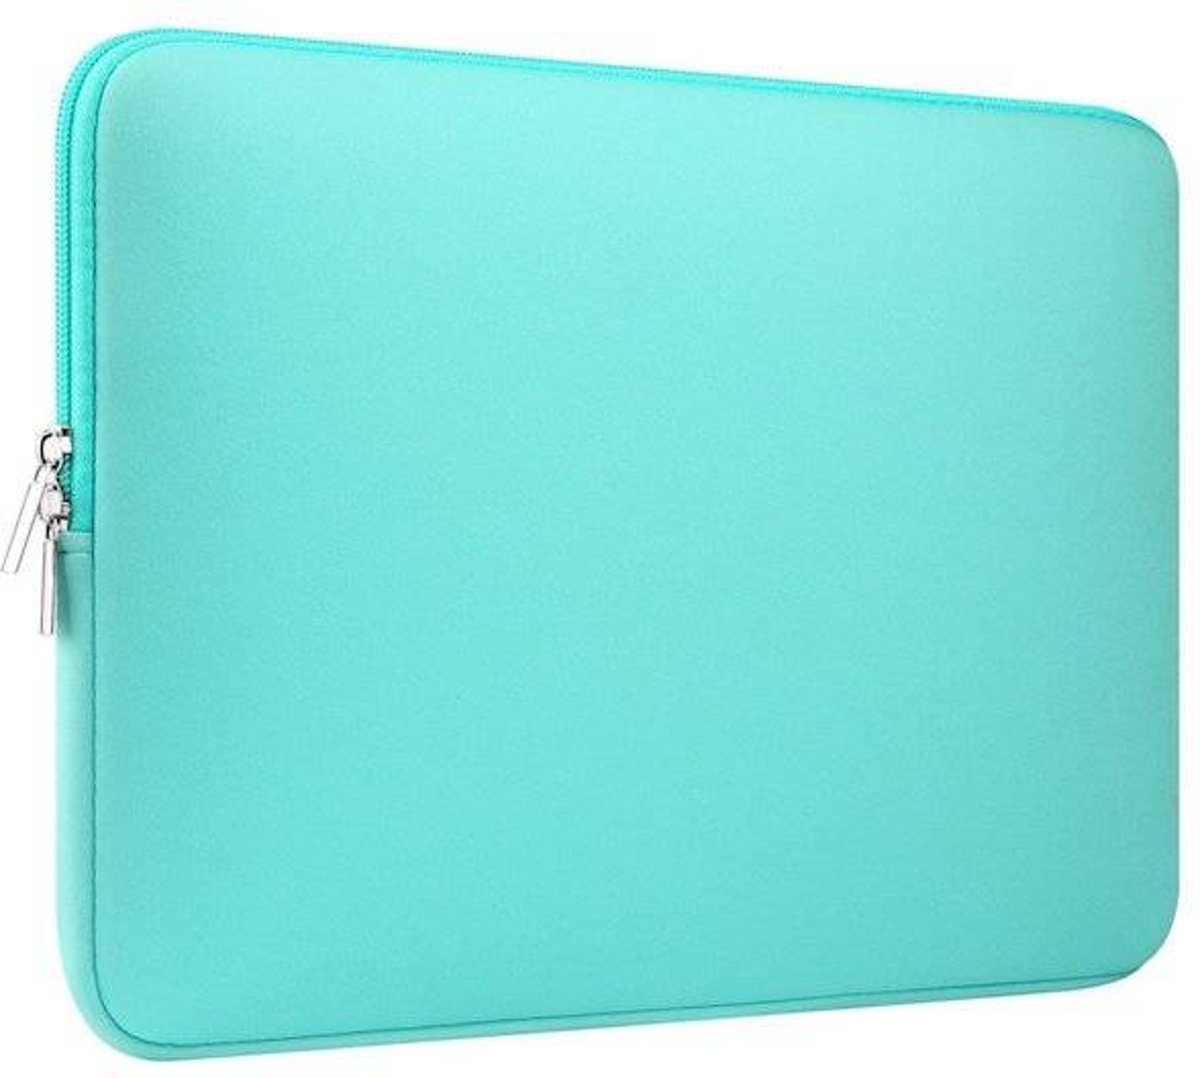 Asus ZenBook Sleeve - 14 inch - Turquoise